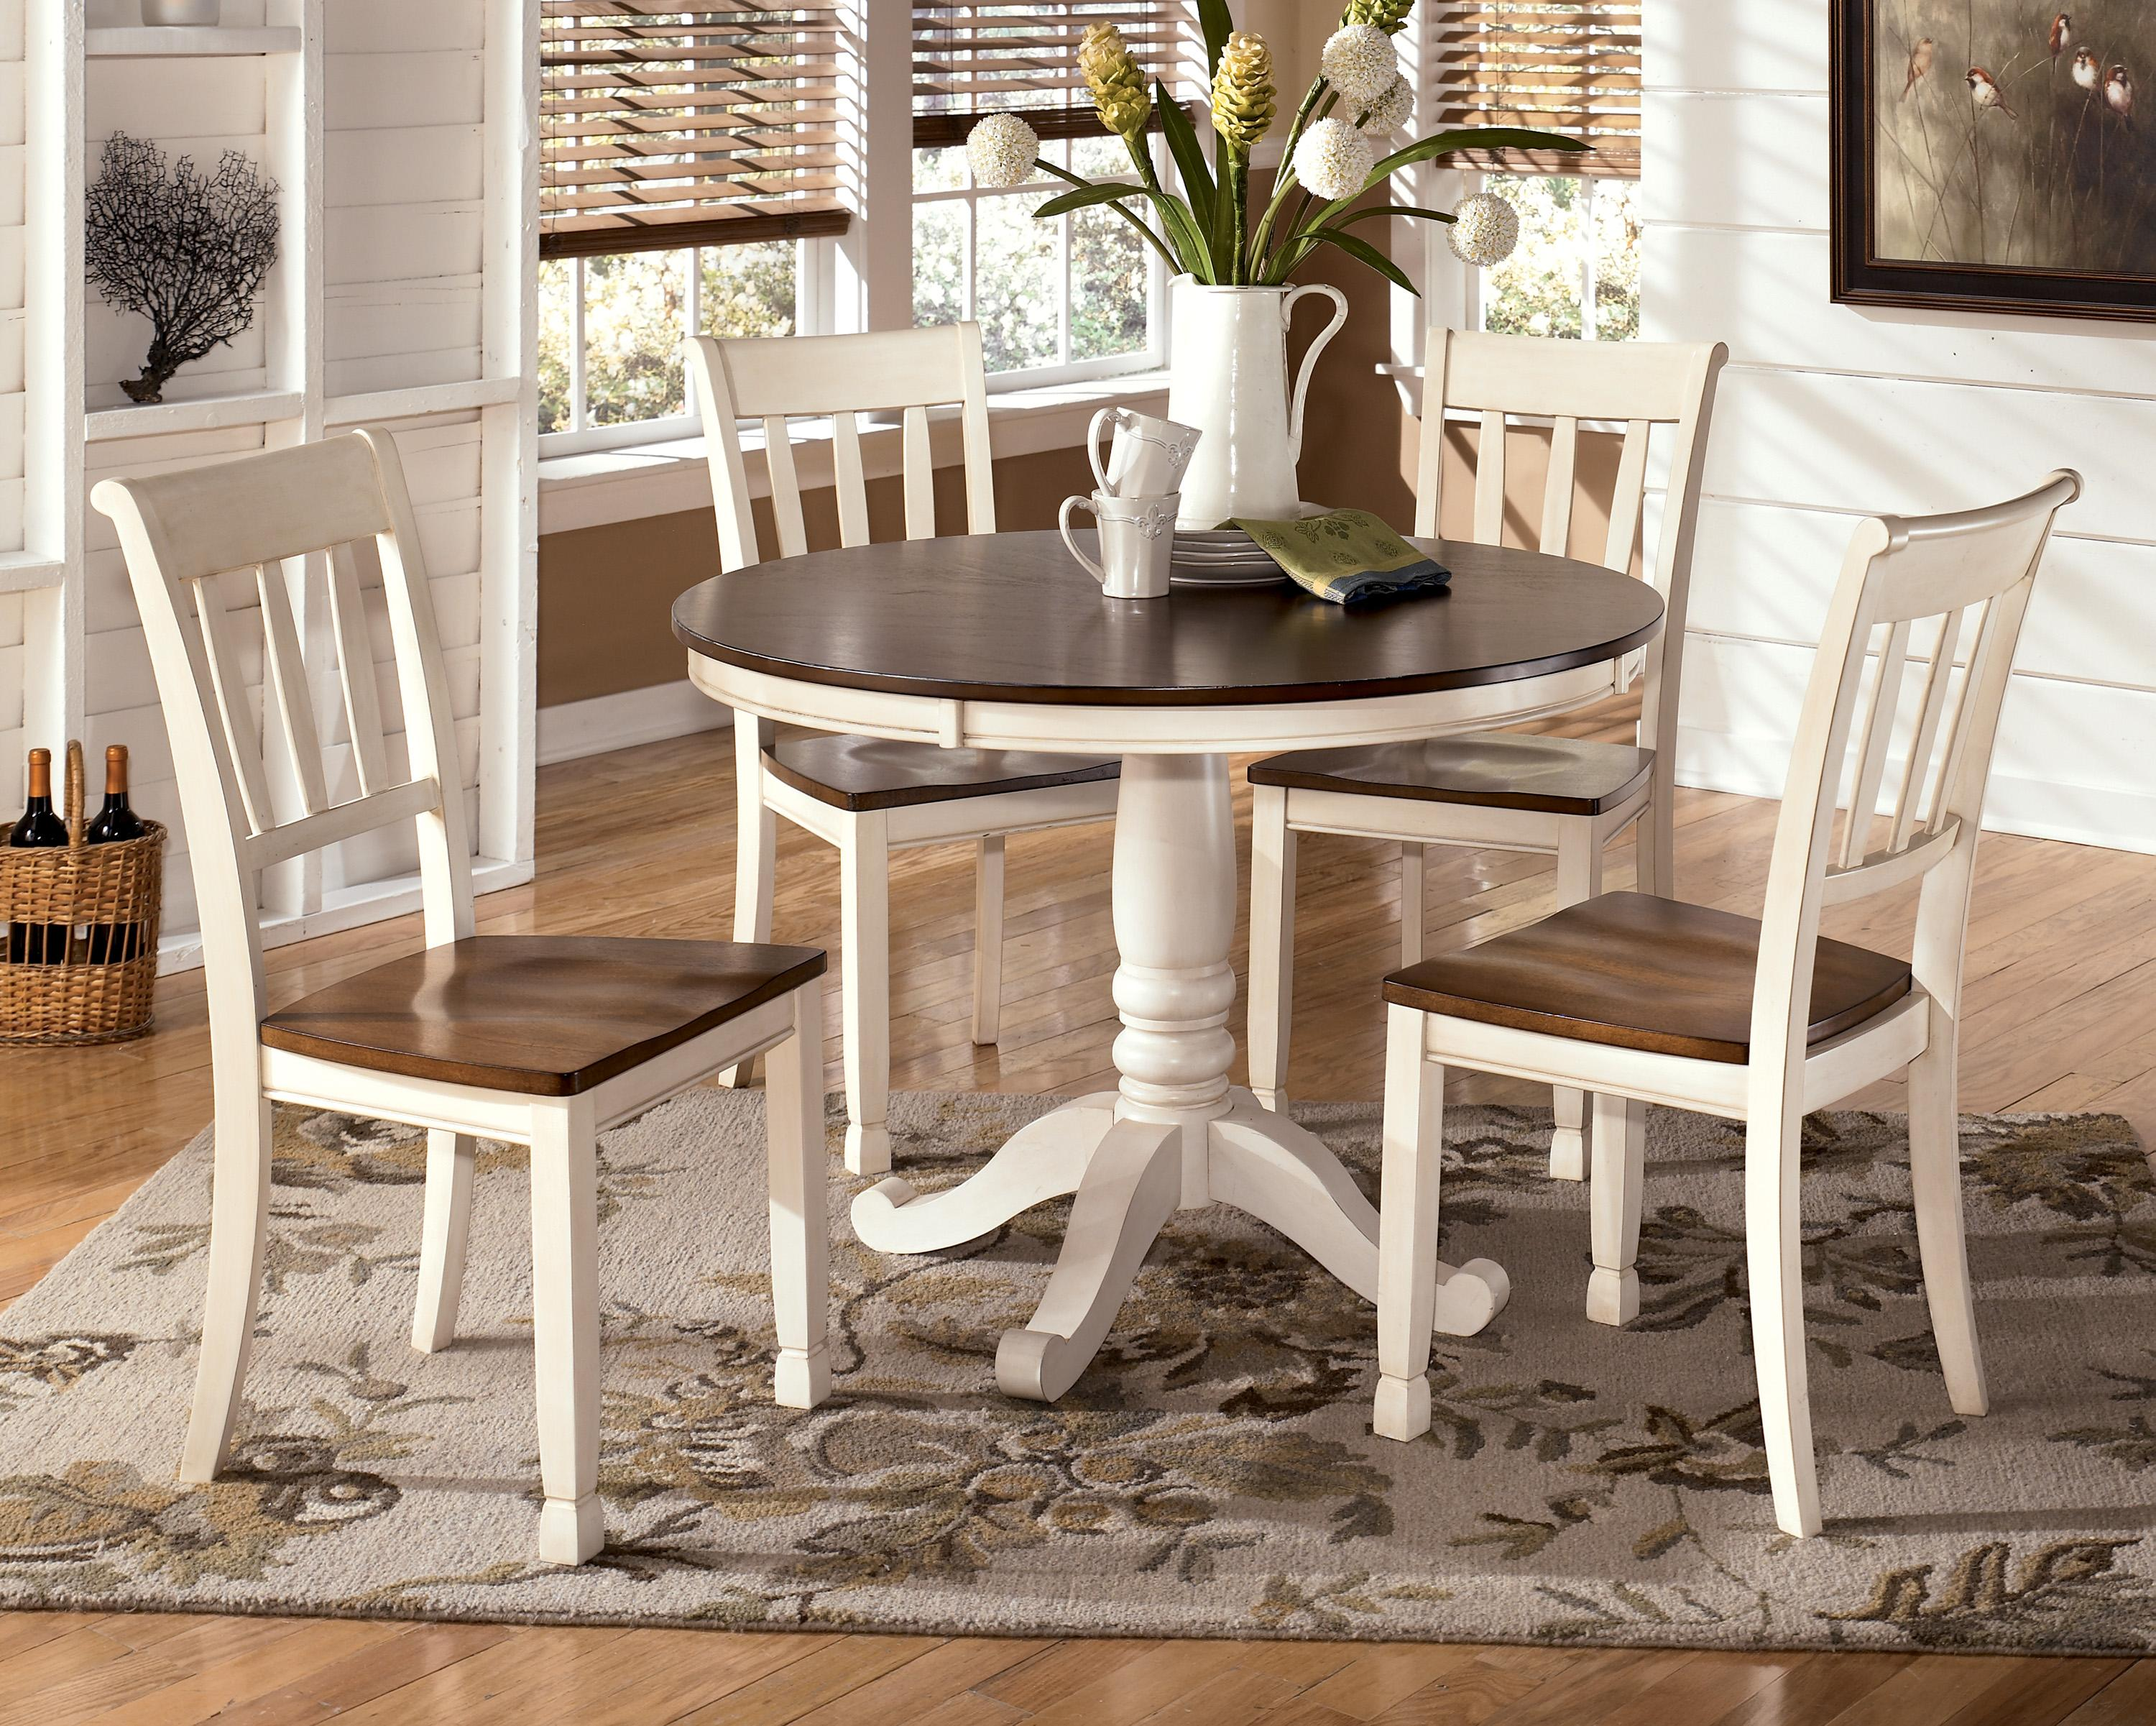 Whitesburg 5-Piece Round Table Set by Signature Design by Ashley at Northeast Factory Direct